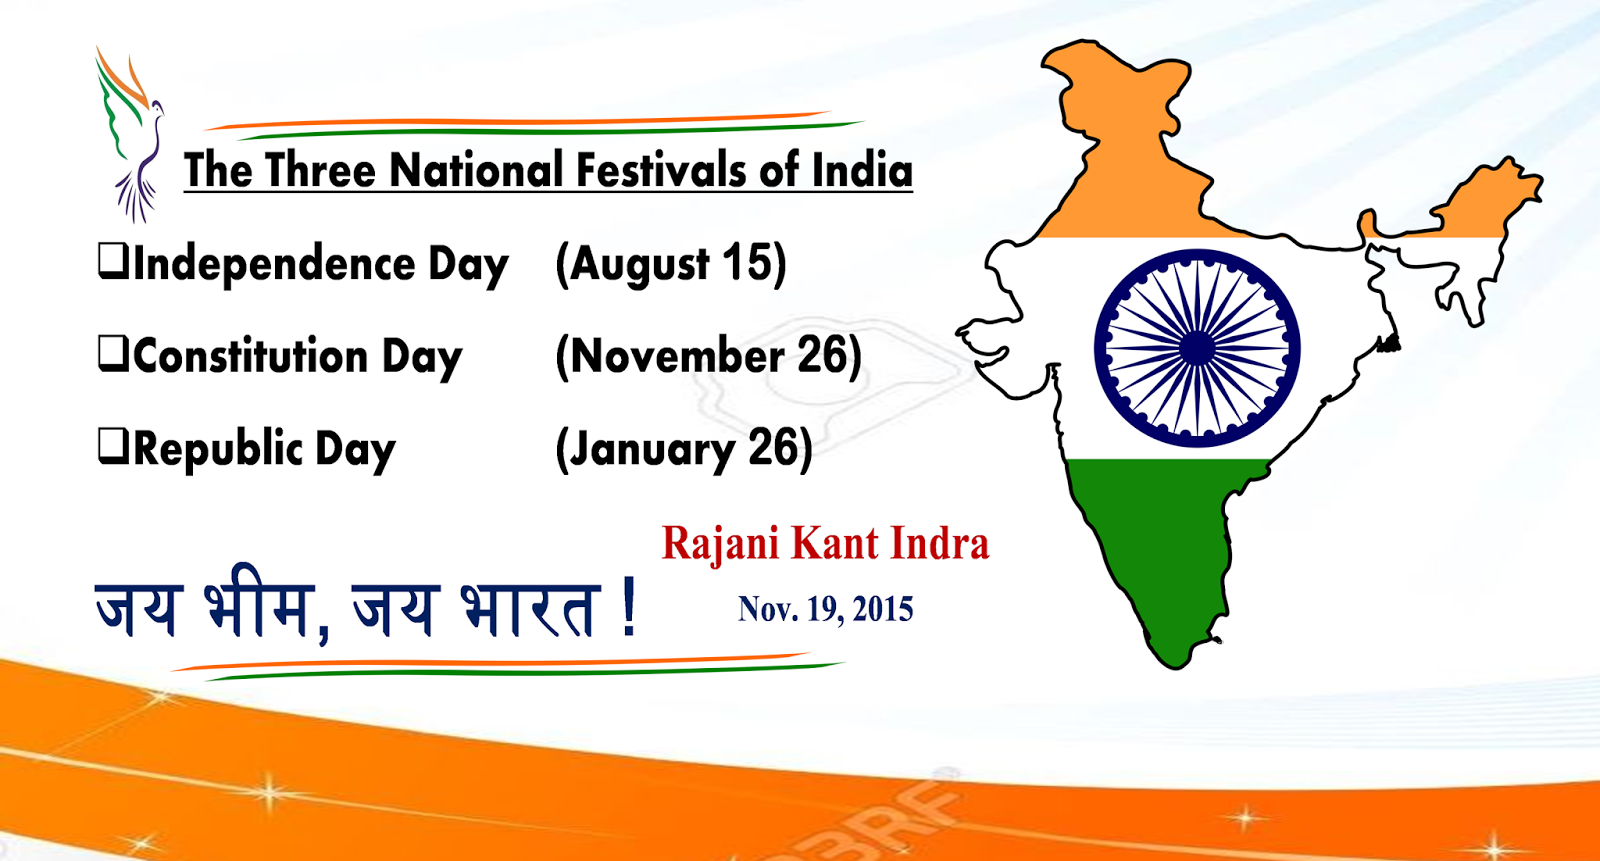 Essay about national festivals of india